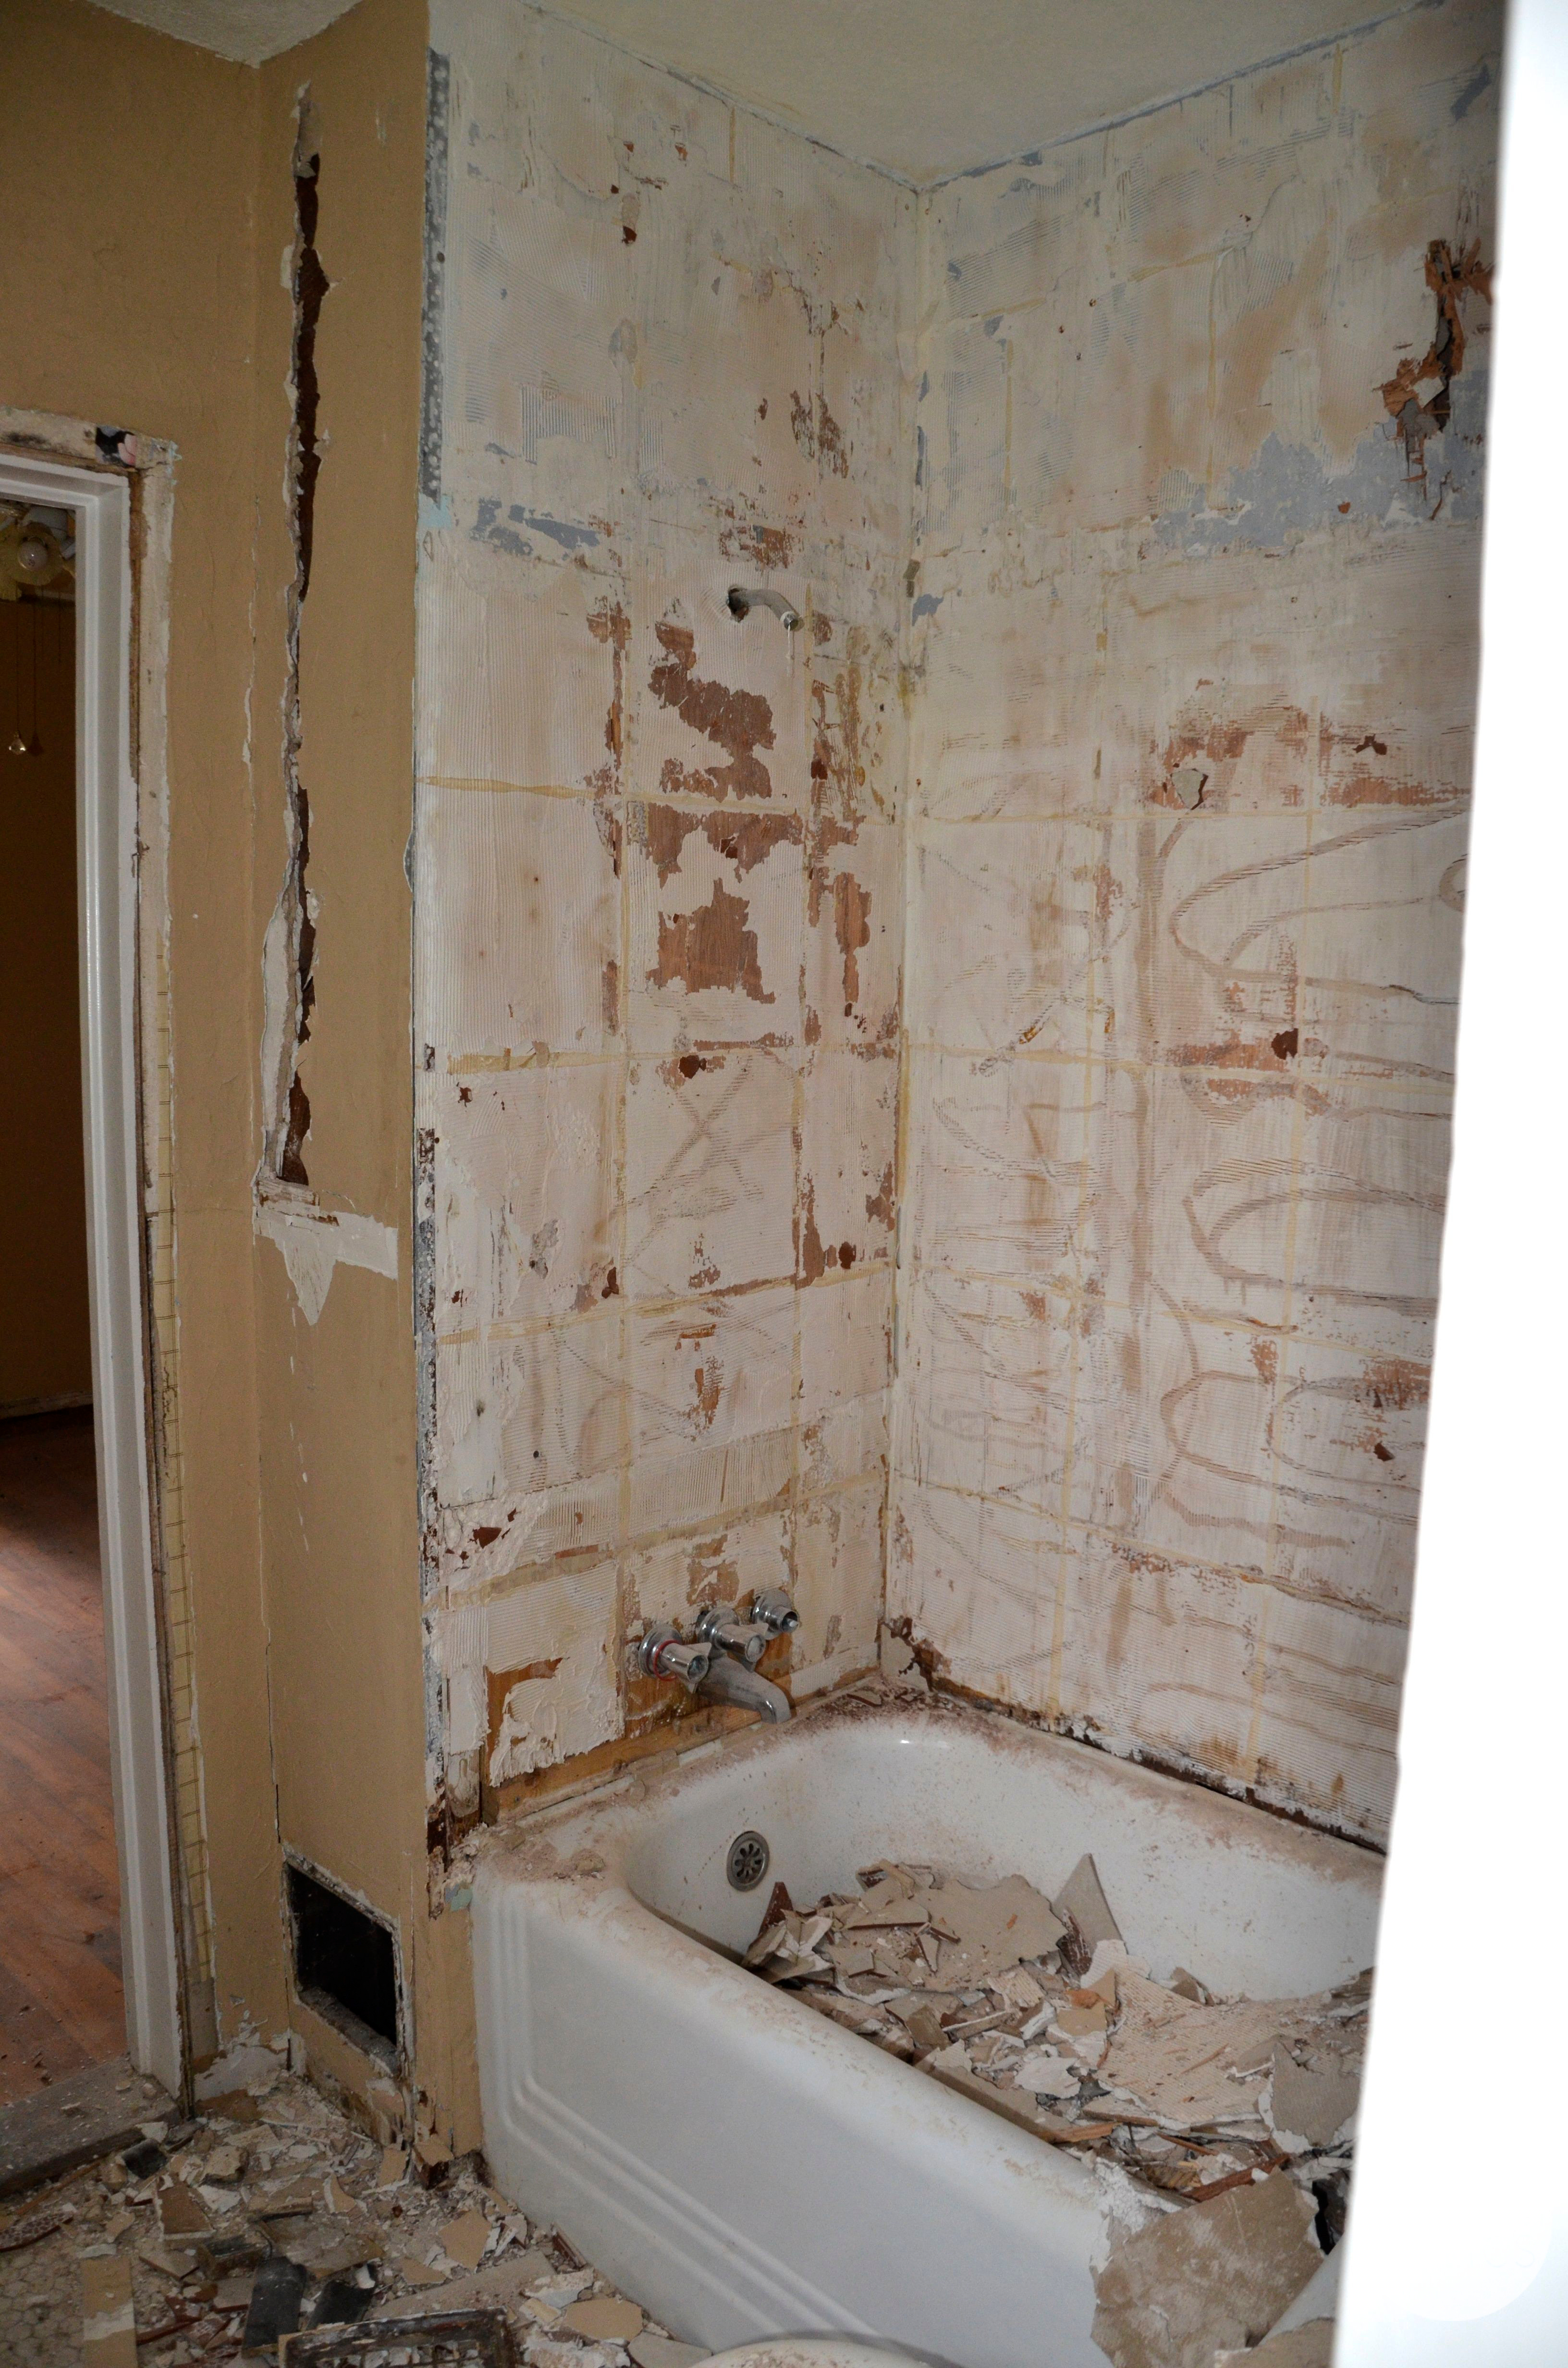 Crazy Old Houses! What We Found During Demo of the Bathroom